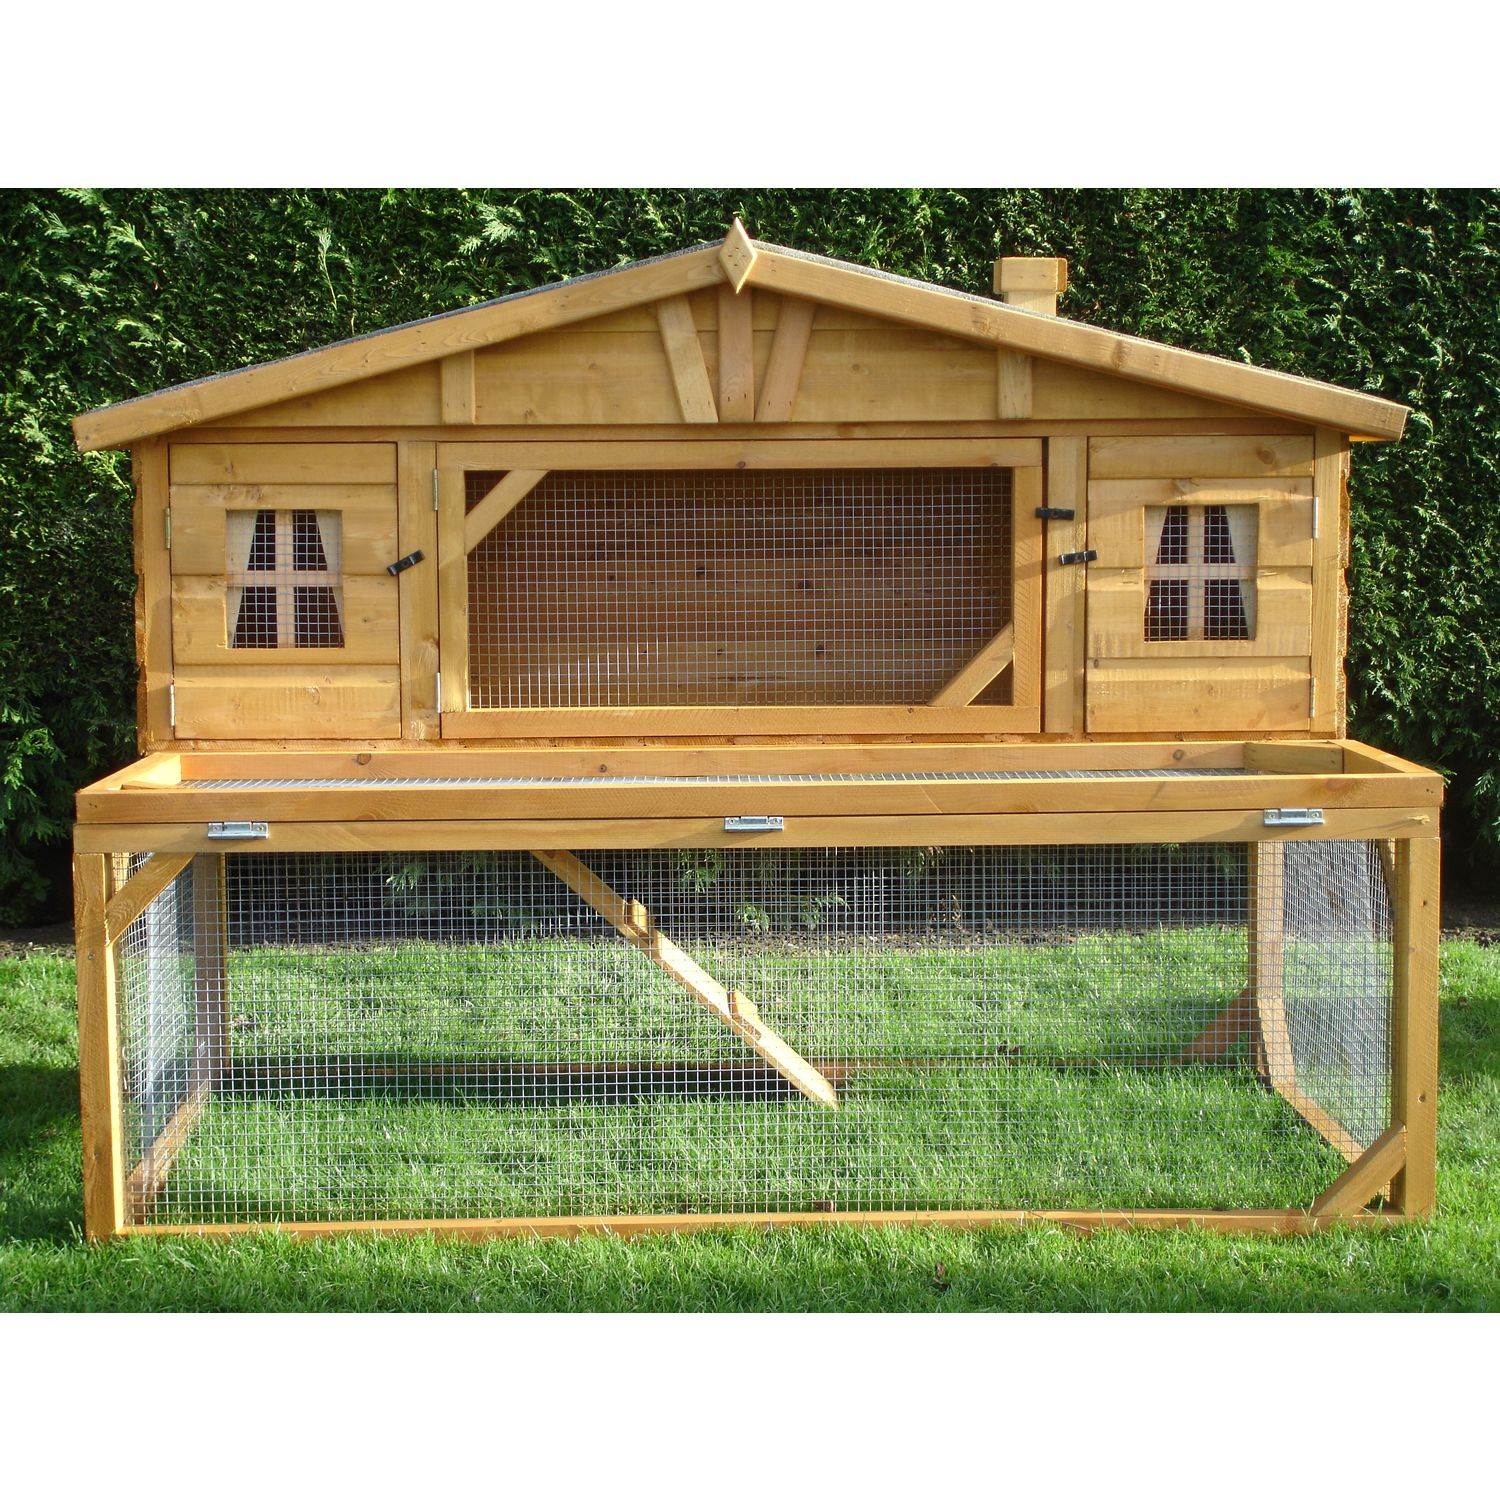 rabbit hutch plans with step by step photos pinnacle mansion rabbit hutch next day